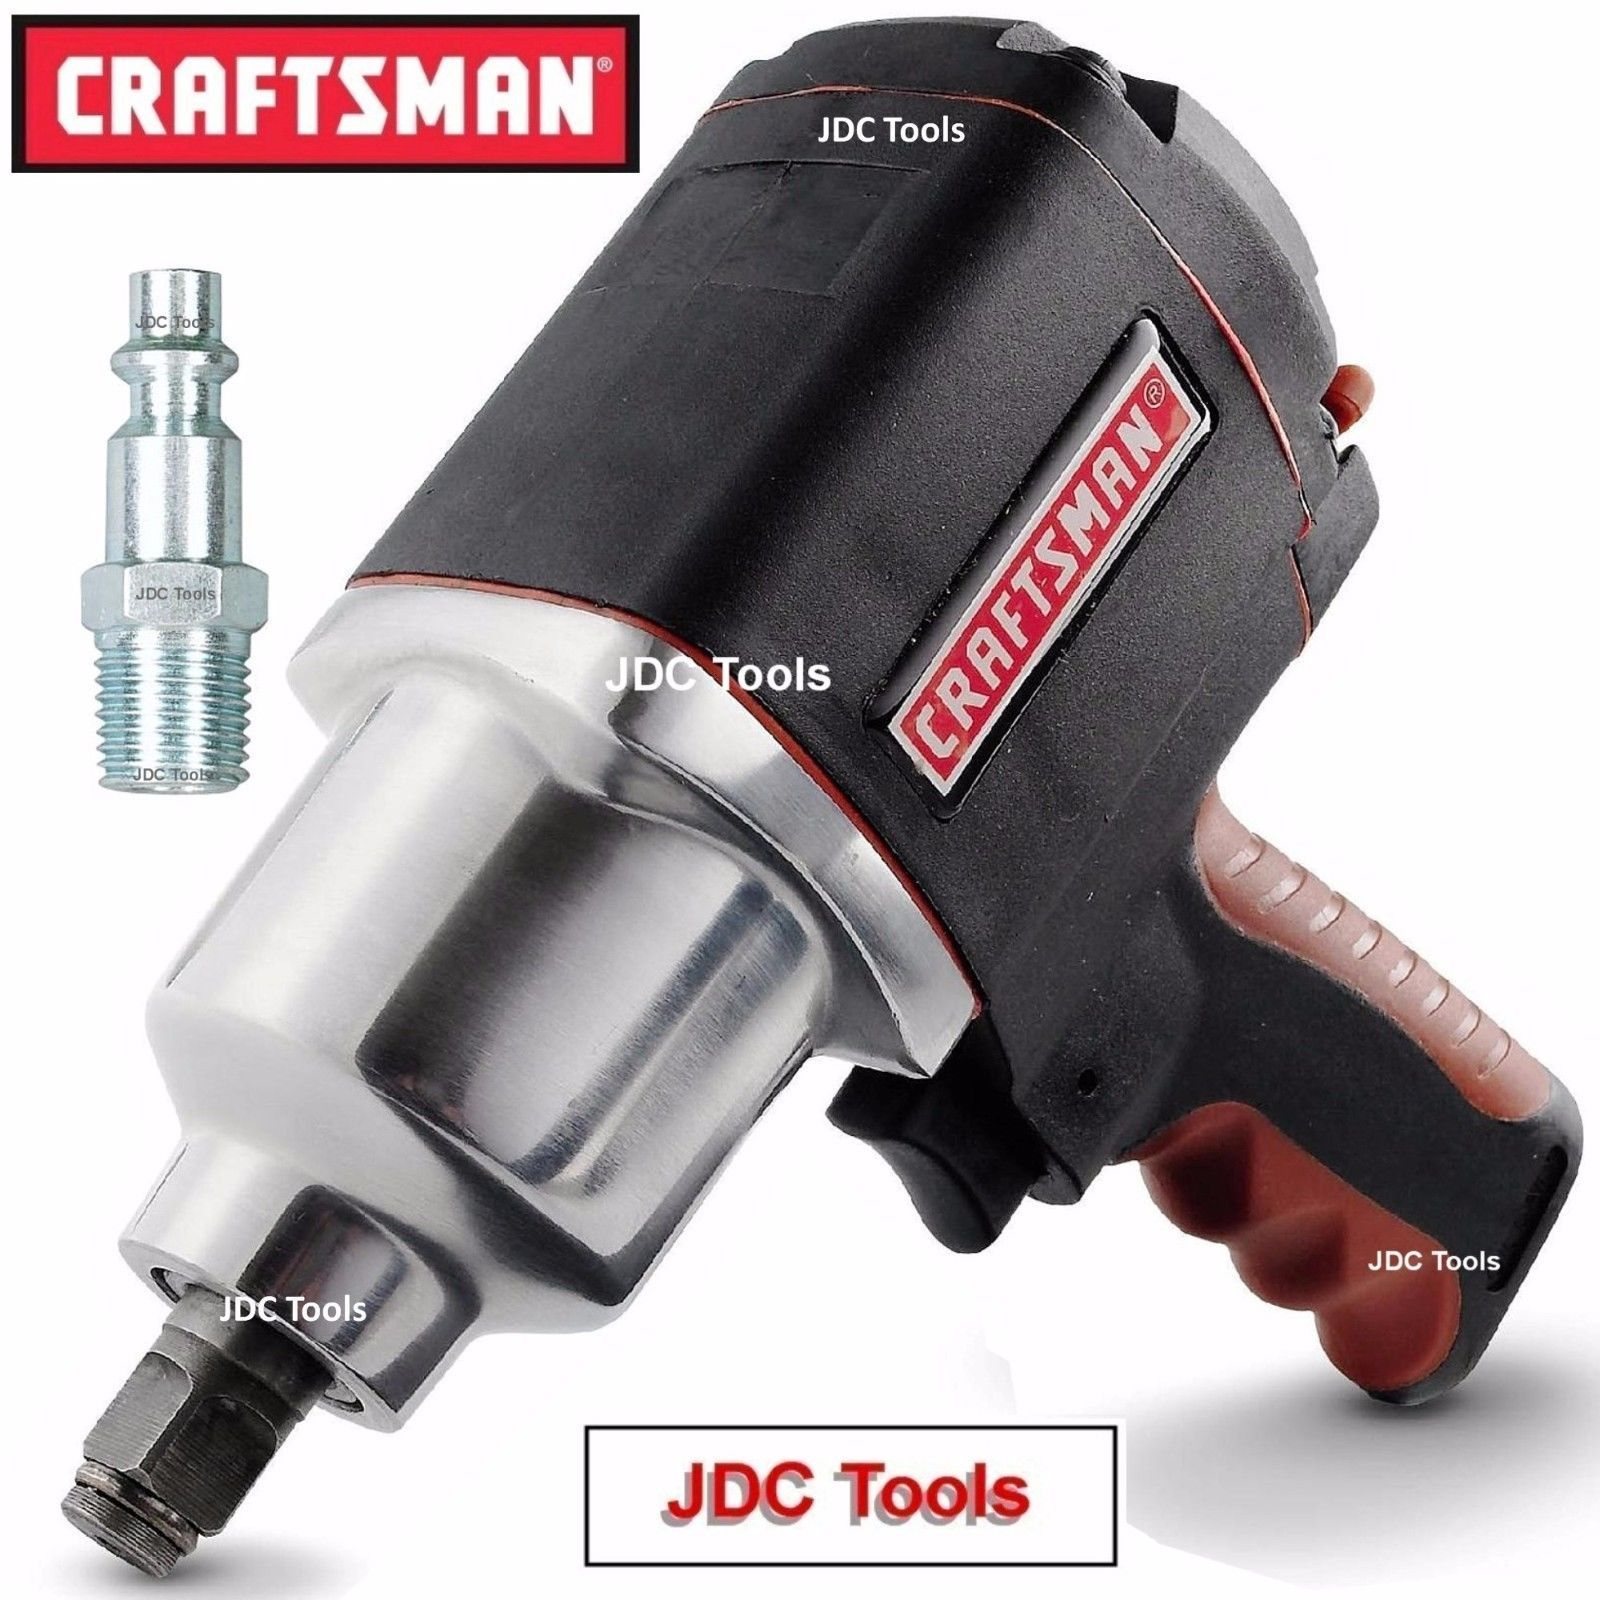 Craftsman 1 2 Drive Air Impact Wrench W 3 8 Adapter 2 Tools In 1 Mechanic Tools Impact Wrench Air Tools